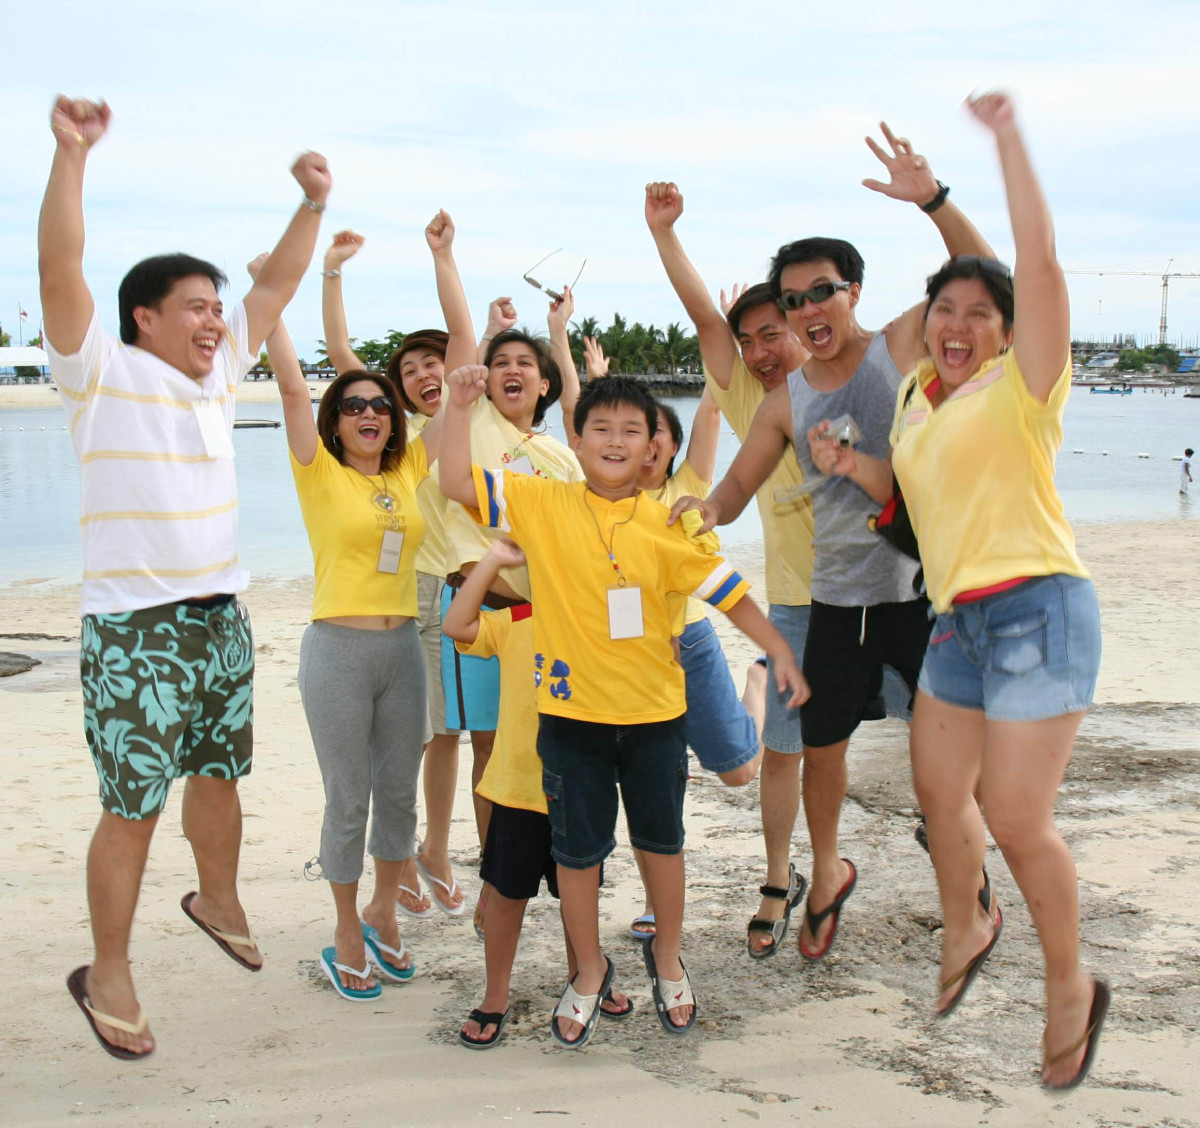 Games: Games And Activities For Your Family Reunion